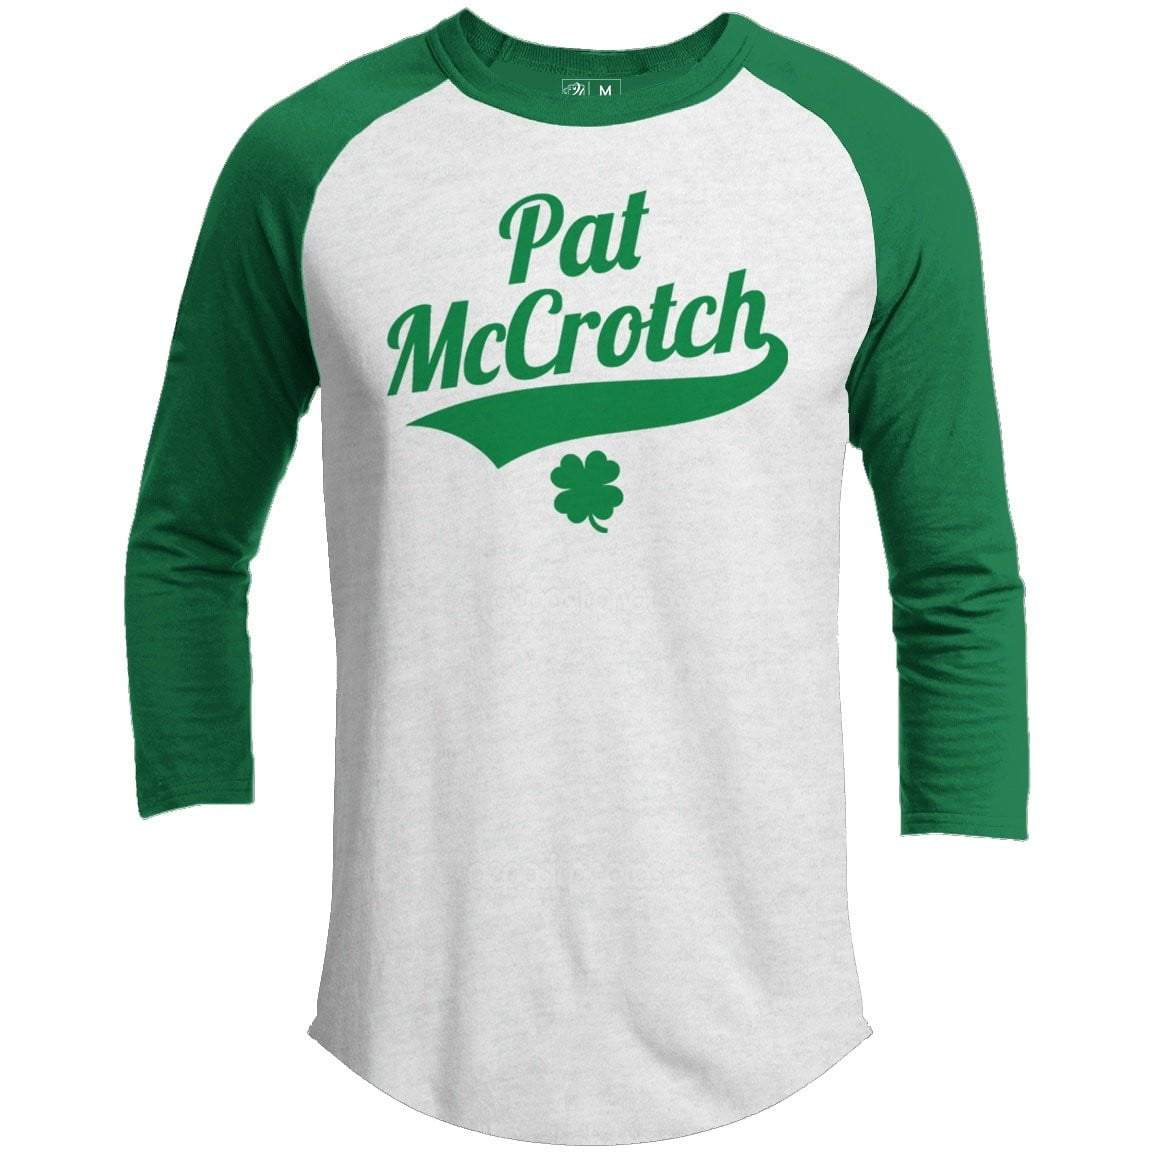 1c624282 Pat McCrotch St. Patrick's Day Raglan